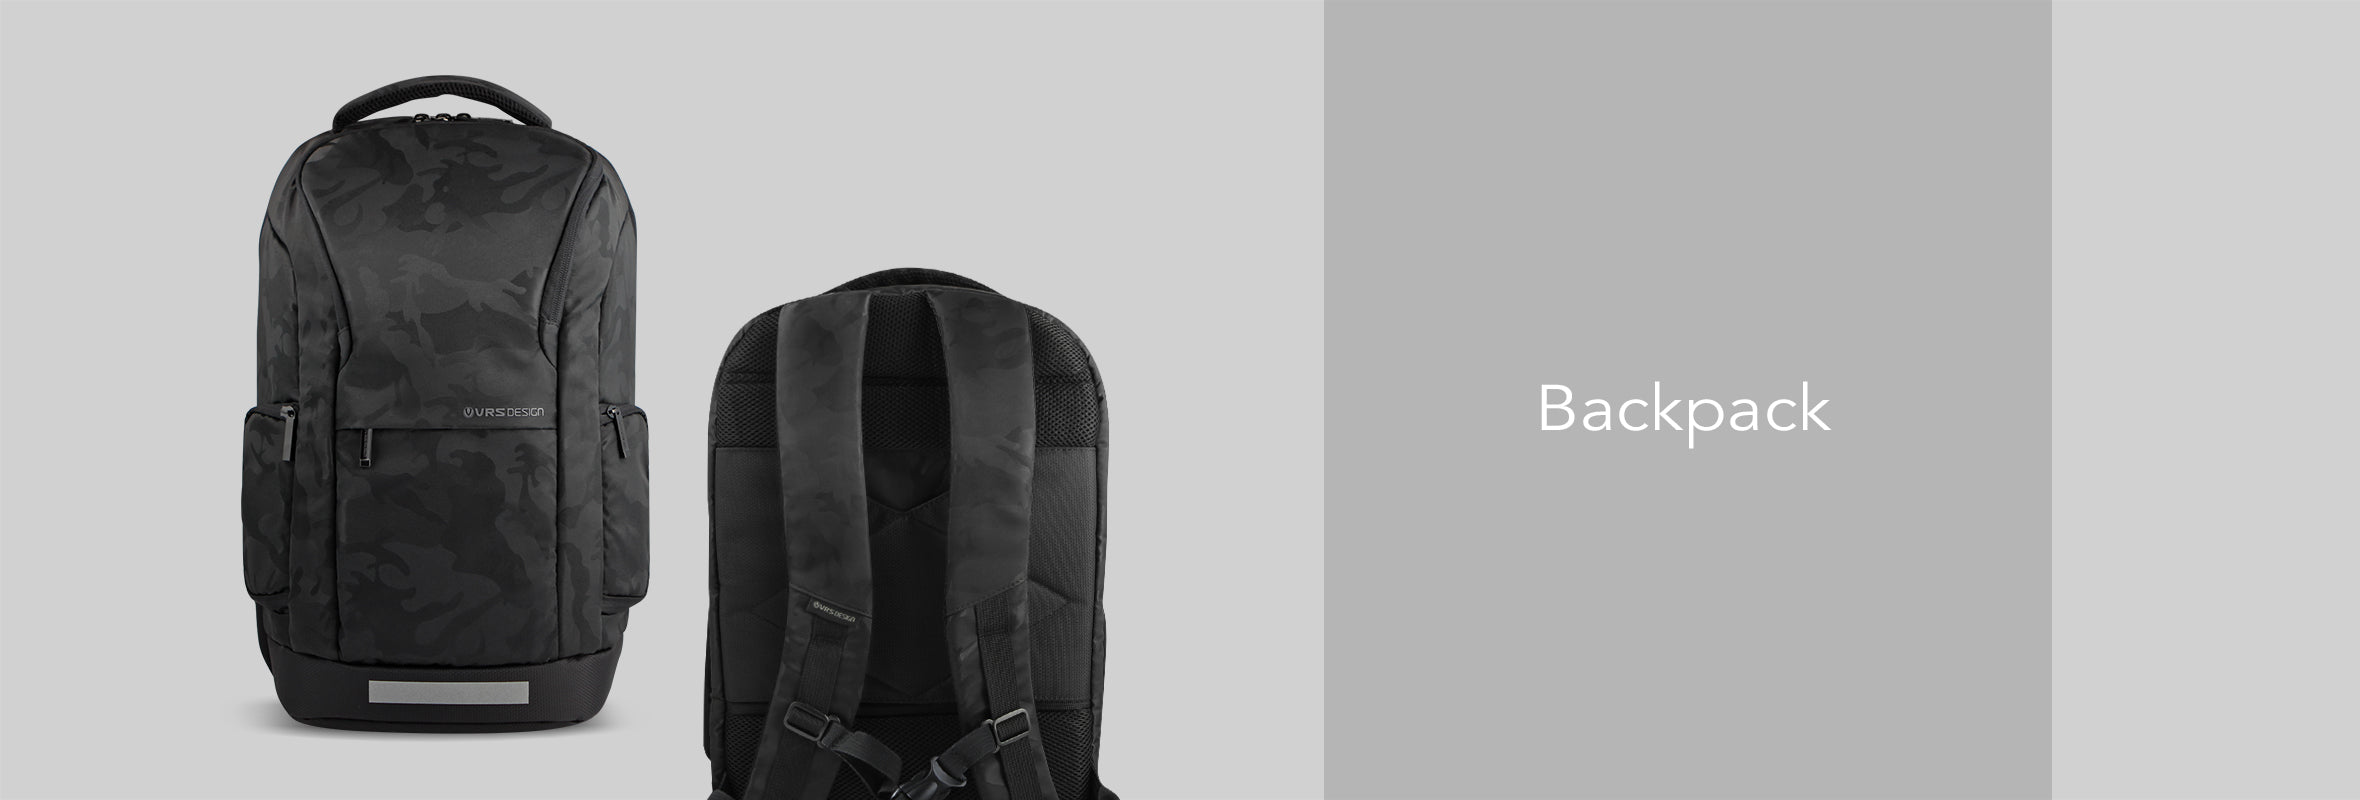 VRS Design  [Backpack]  Collection